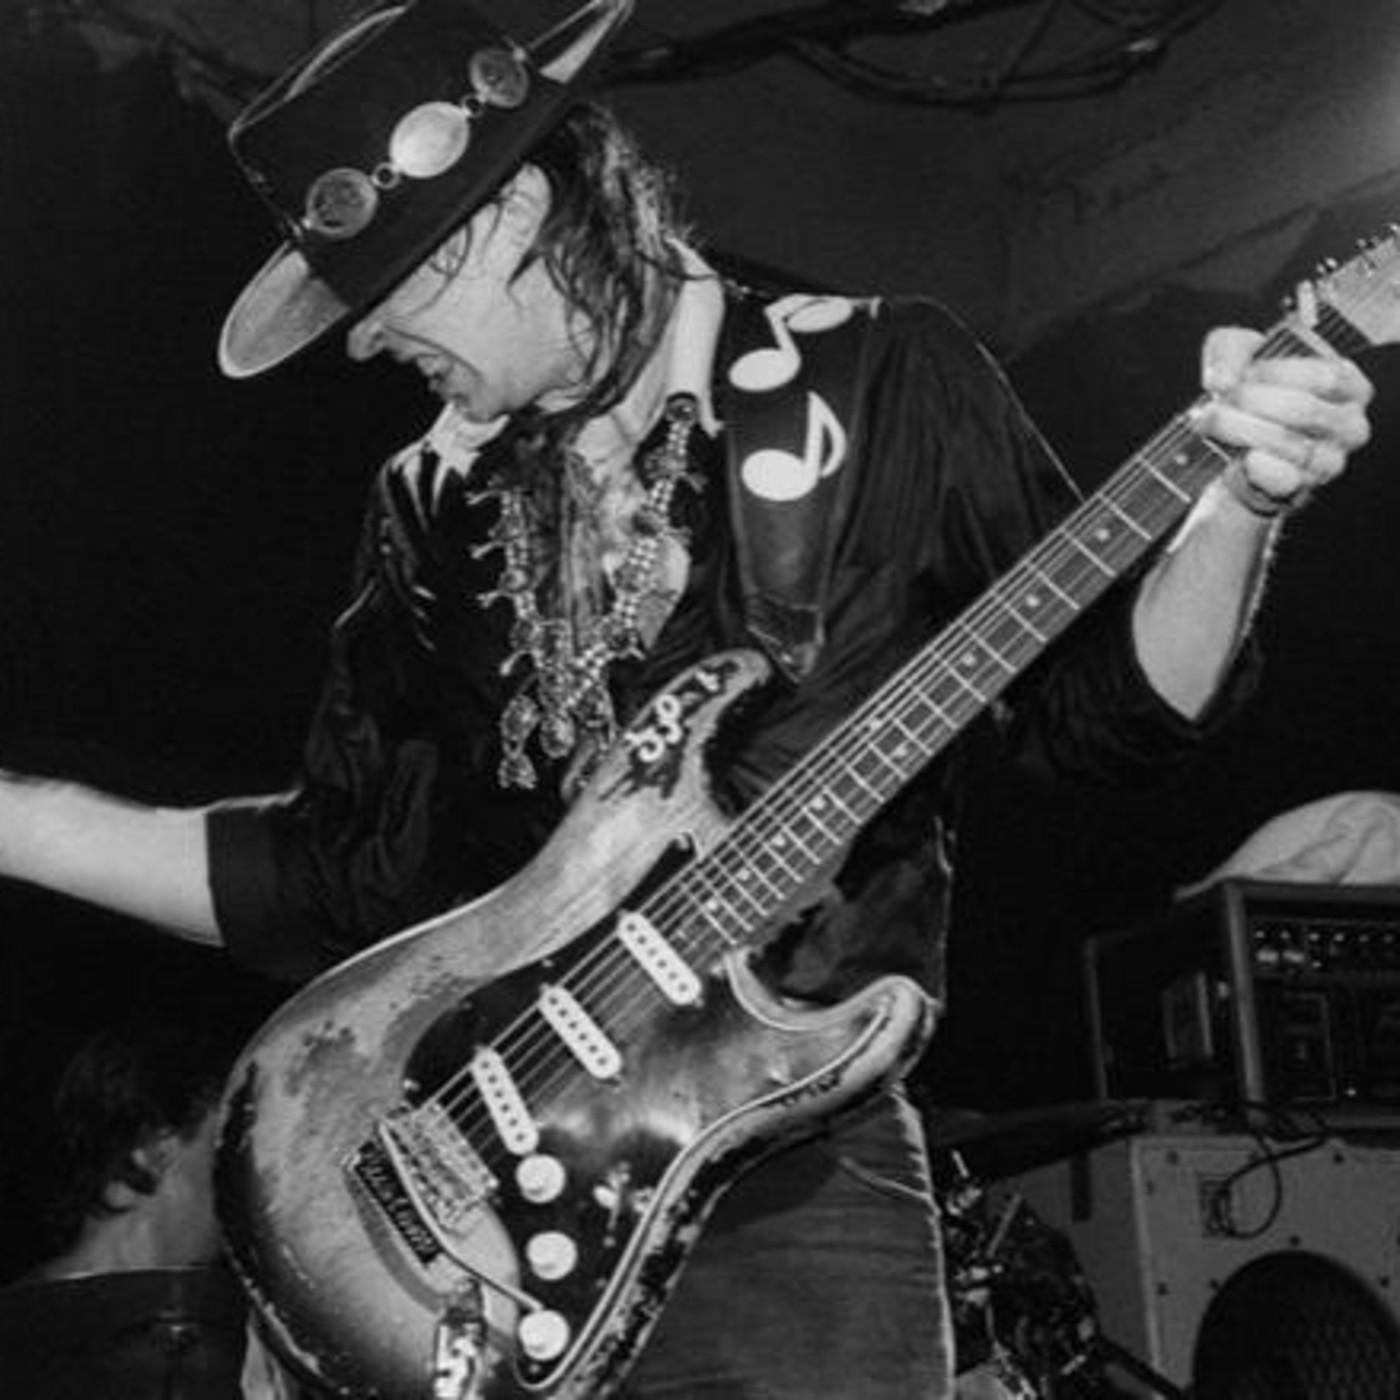 30 años sin Stevie Ray Vaughan.